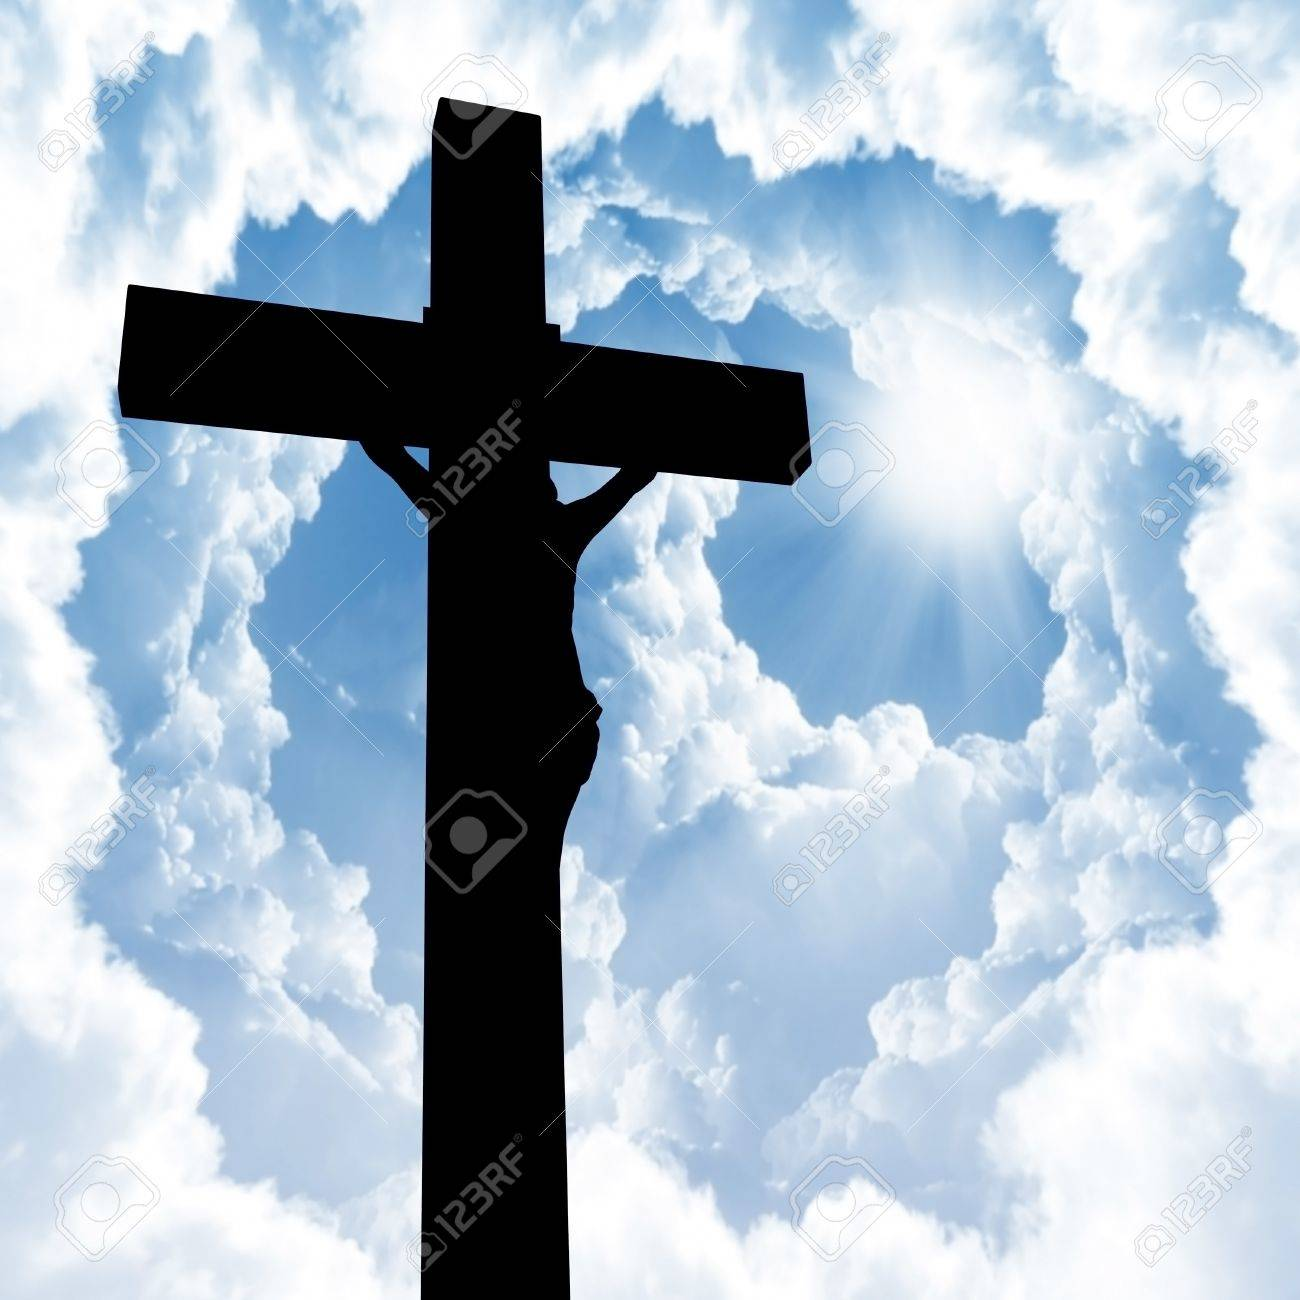 Silhouette of the holy cross on background of storm clouds stock - Wooden Cross Photo Holy Bible And Cross On A Wooden Brown Background